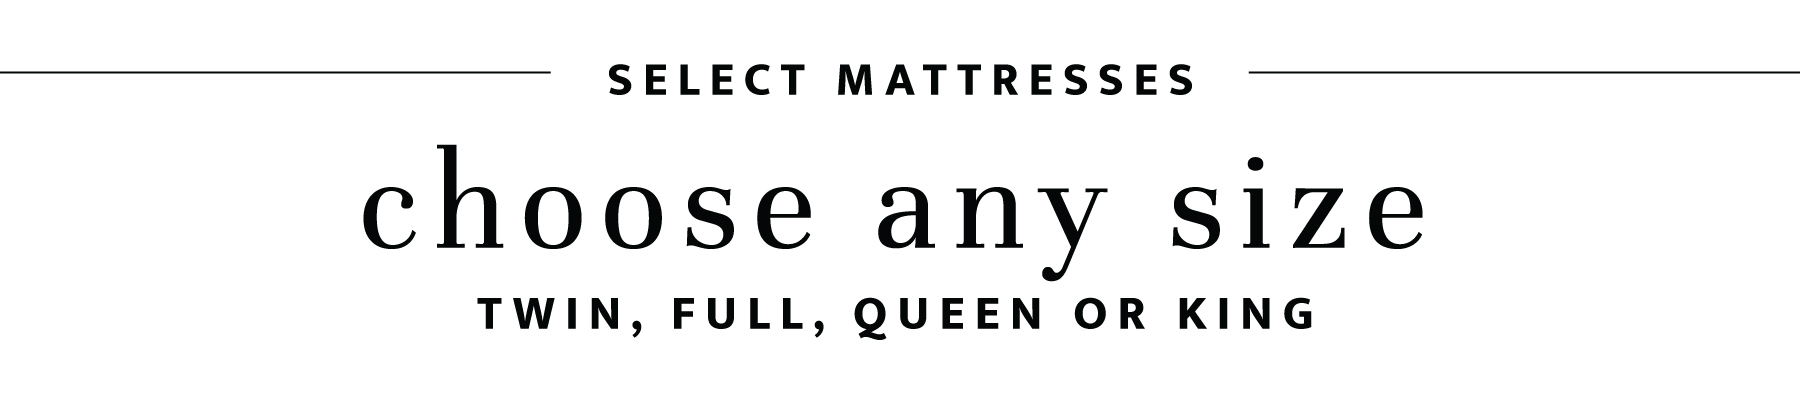 select mattresses choose any size for one price